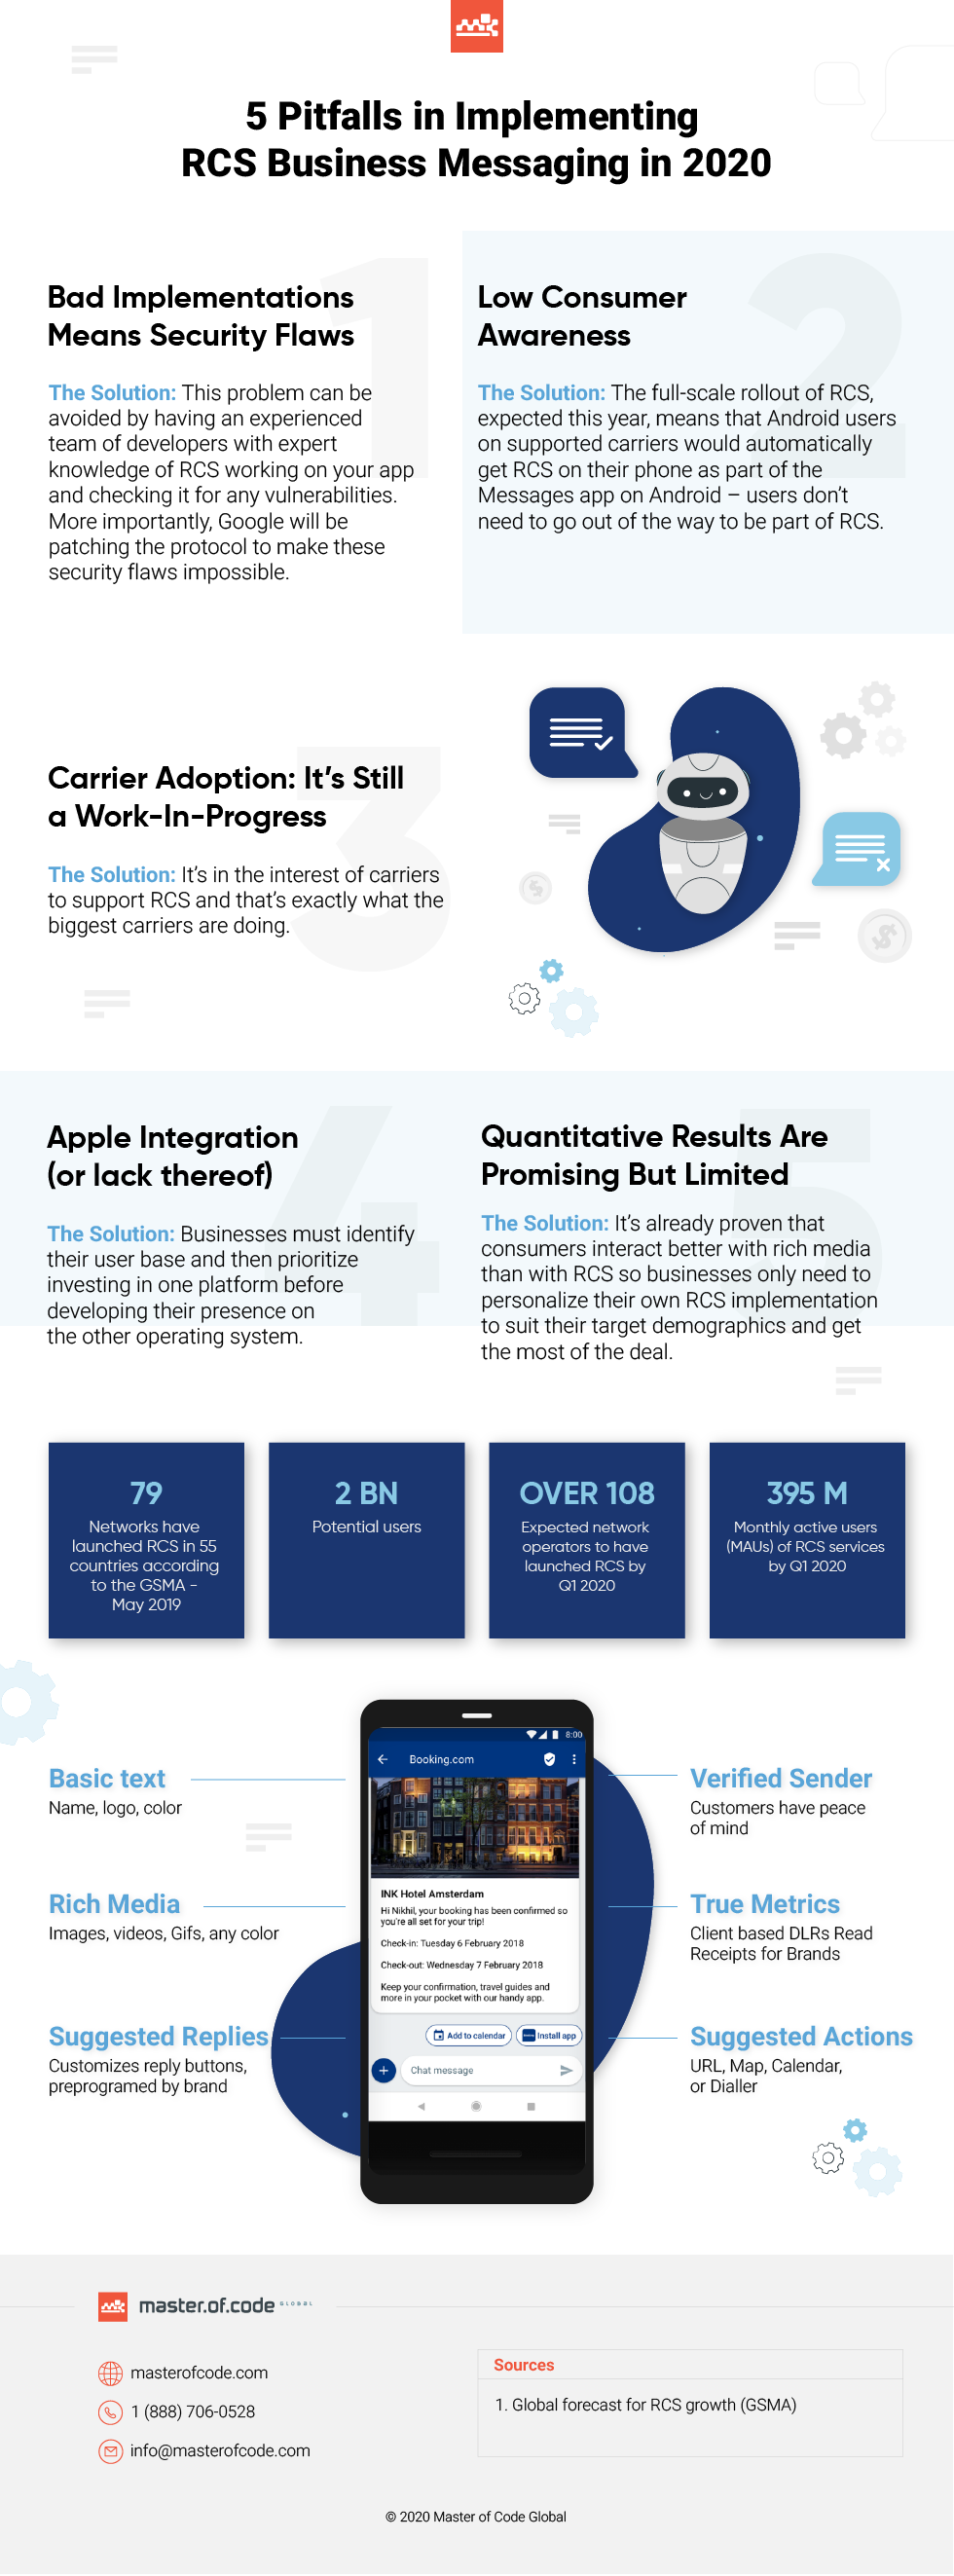 5 Pitfalls in Implementing RCS Business Messaging in 2020 #Infographic